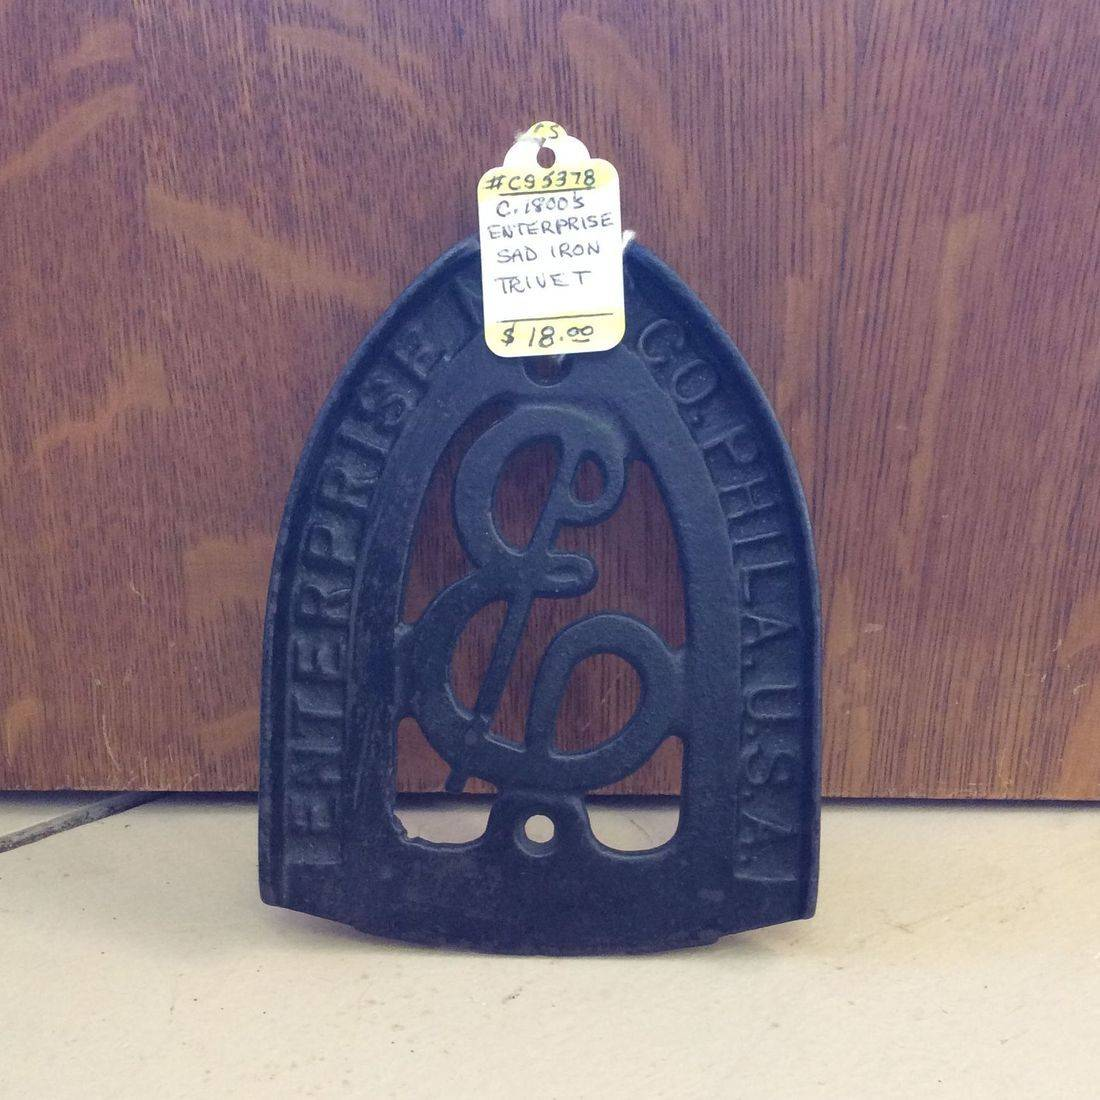 C. 1800's Enterprise Sad Iron Trivet   $18.00